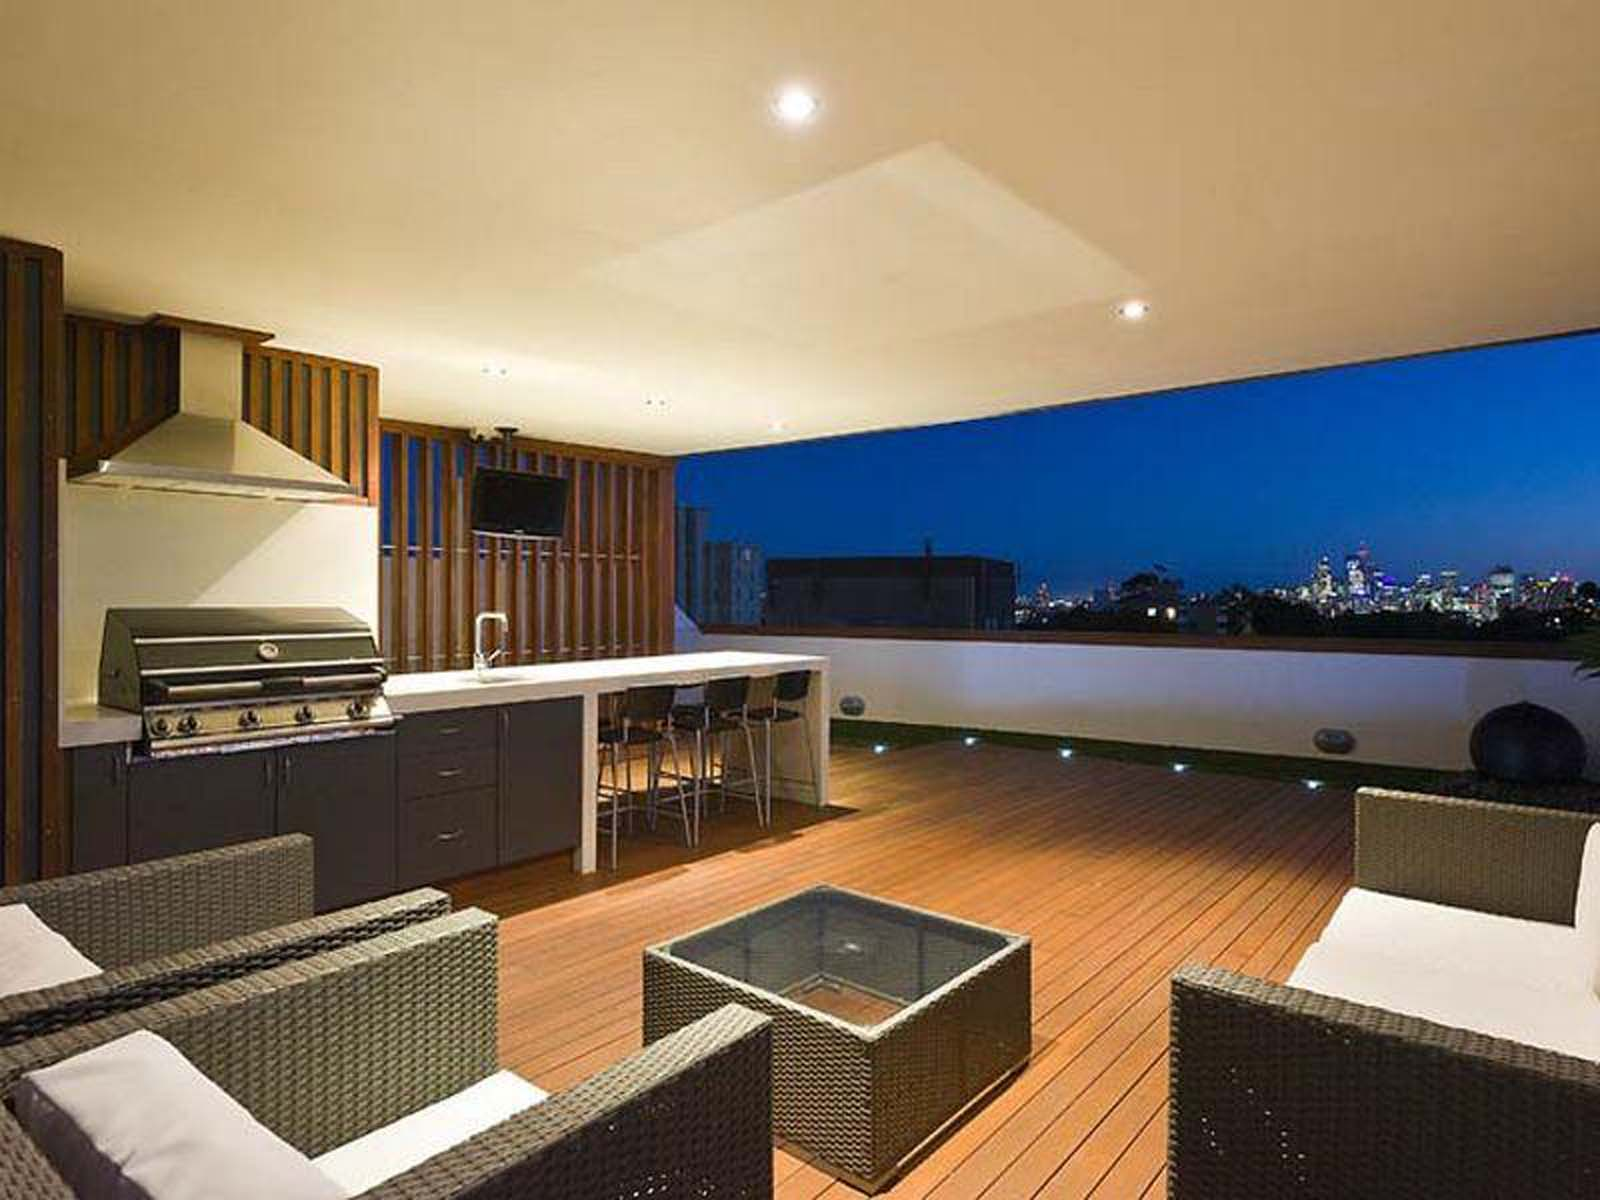 NYE! - Watch the fireworks from your own private roof terrace!